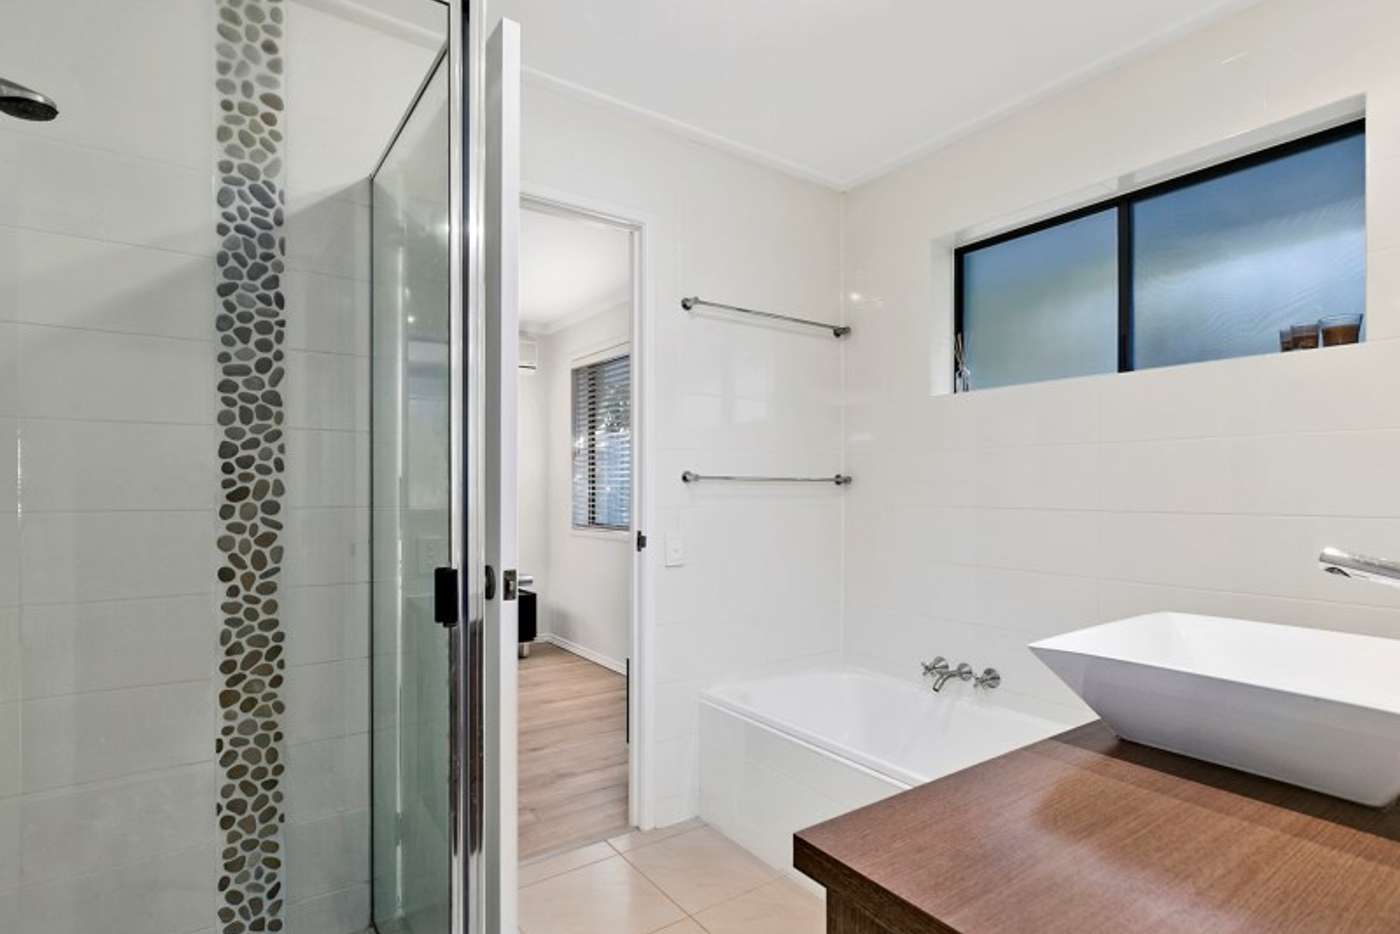 Seventh view of Homely house listing, 7 Koel Street, Noosaville QLD 4566